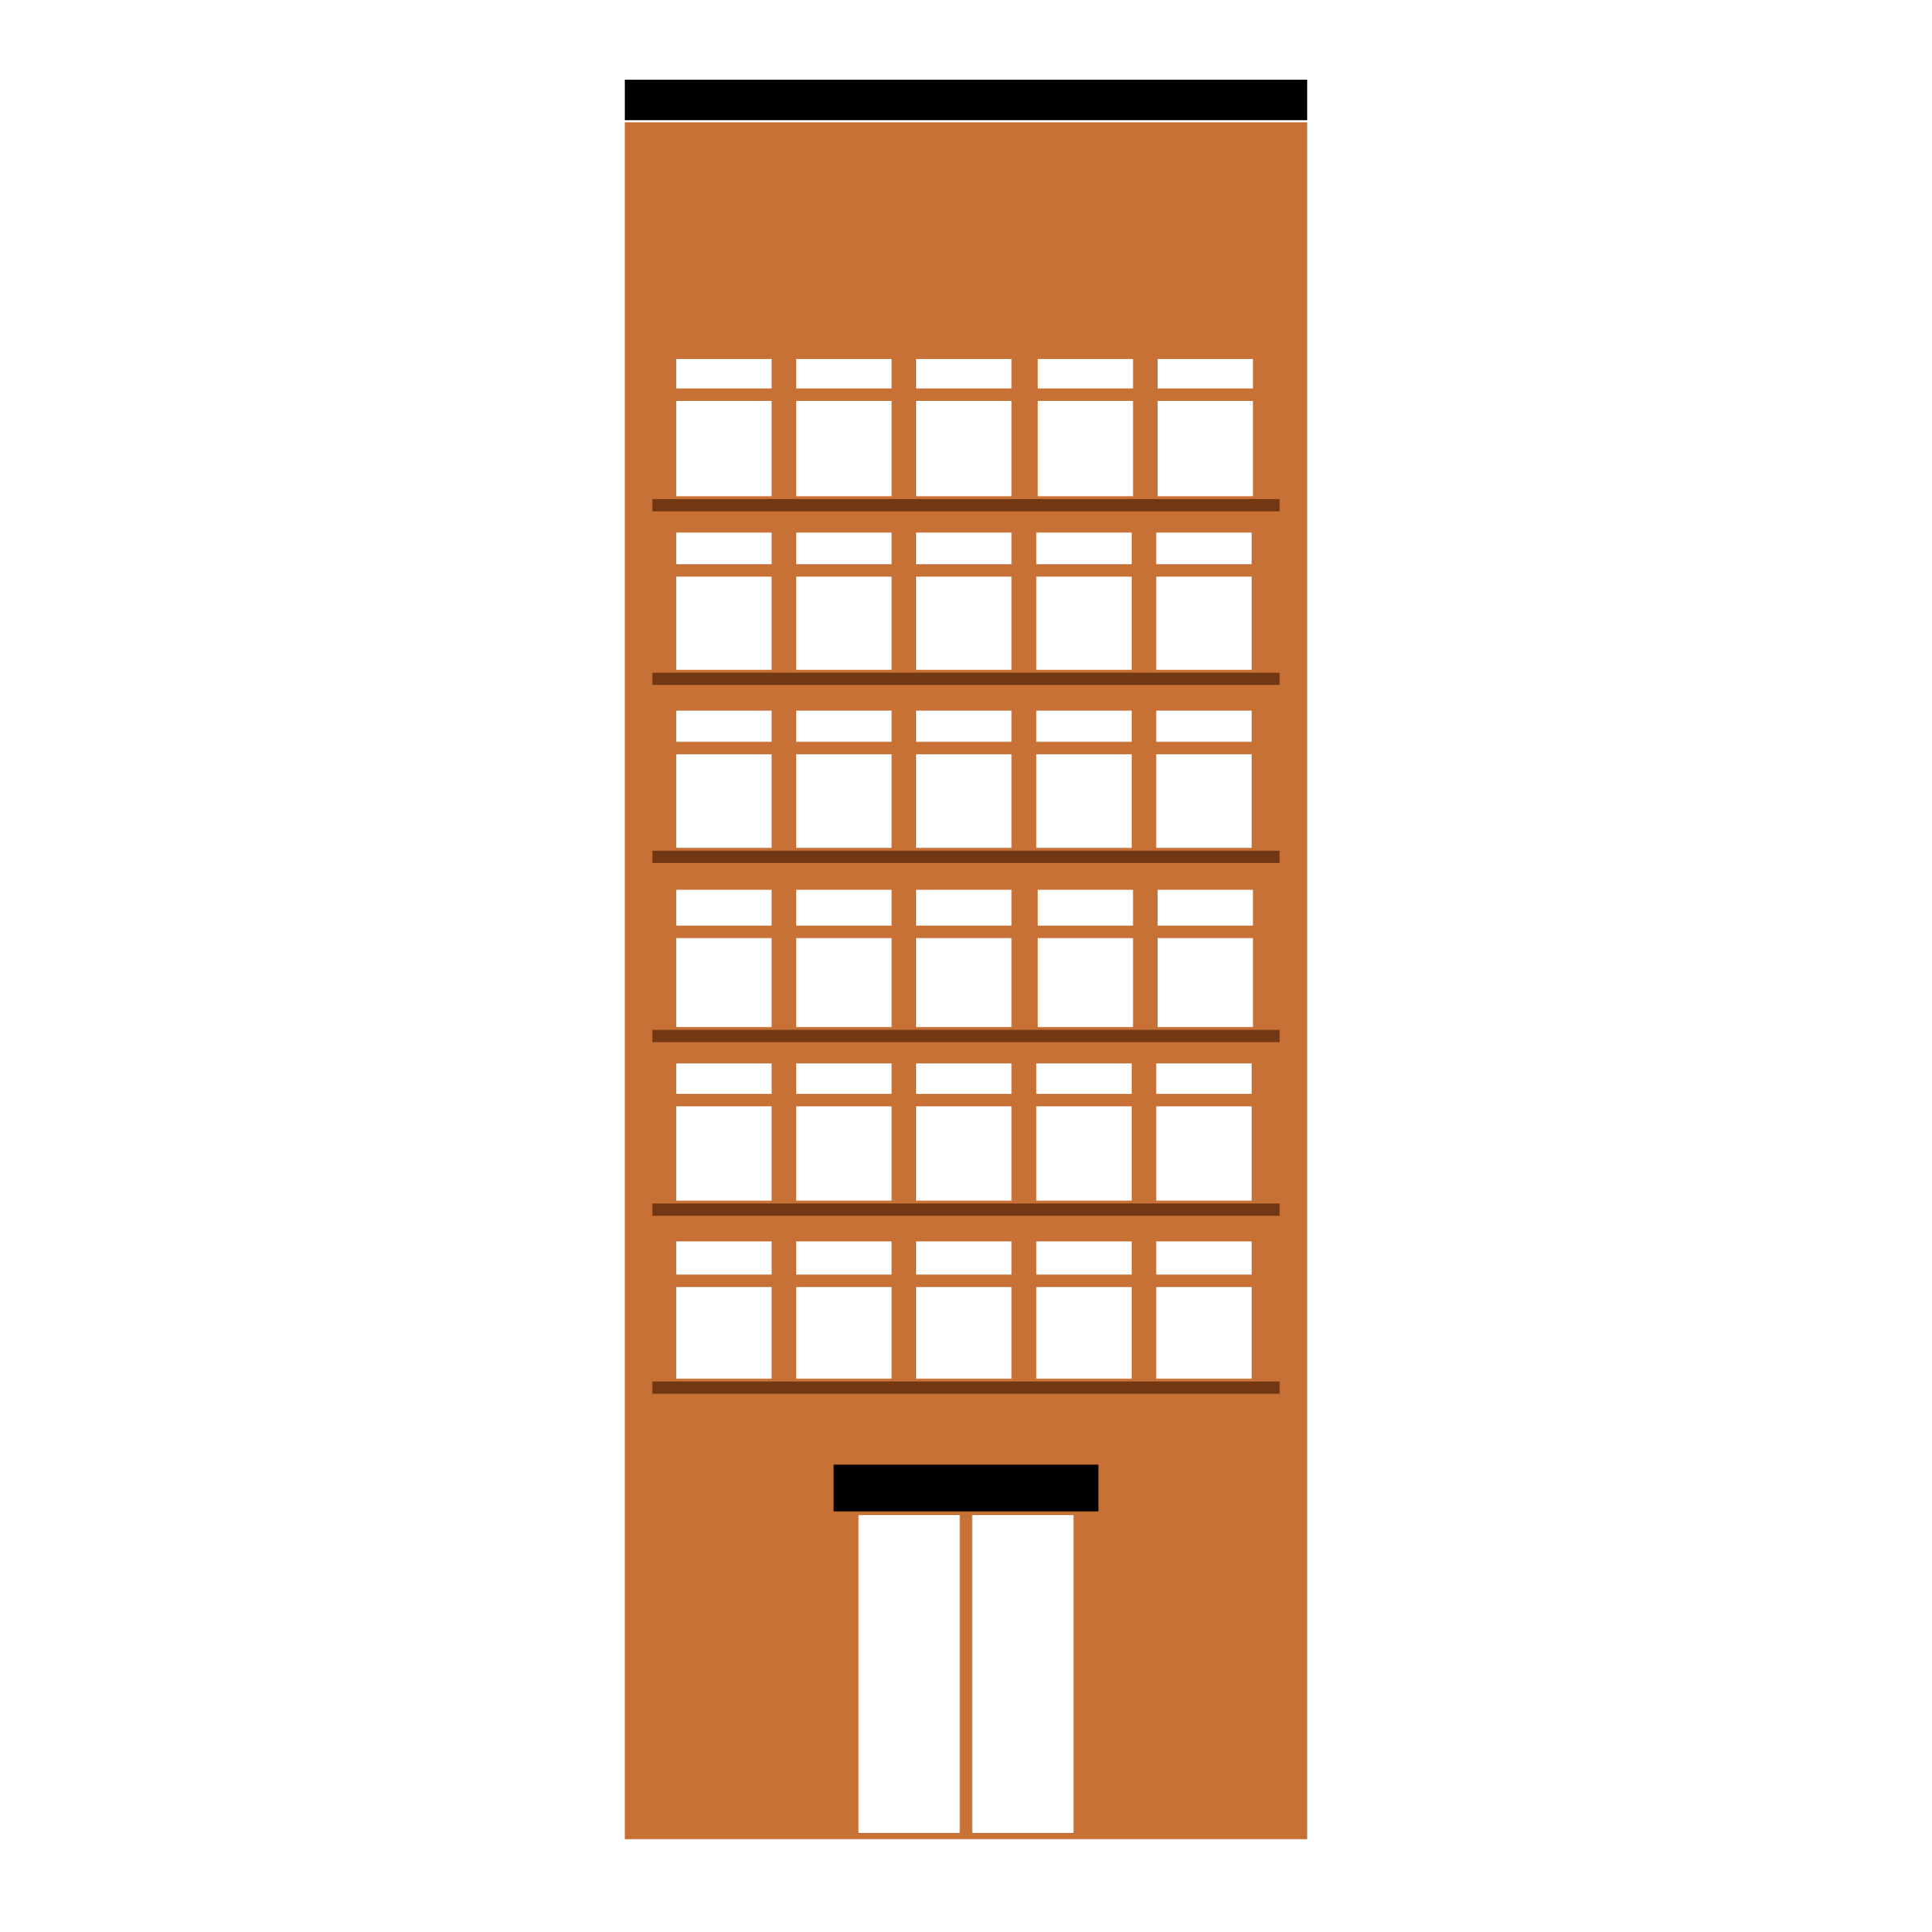 Tall biulding clipart graphic download Tall building clipart 7 » Clipart Station graphic download